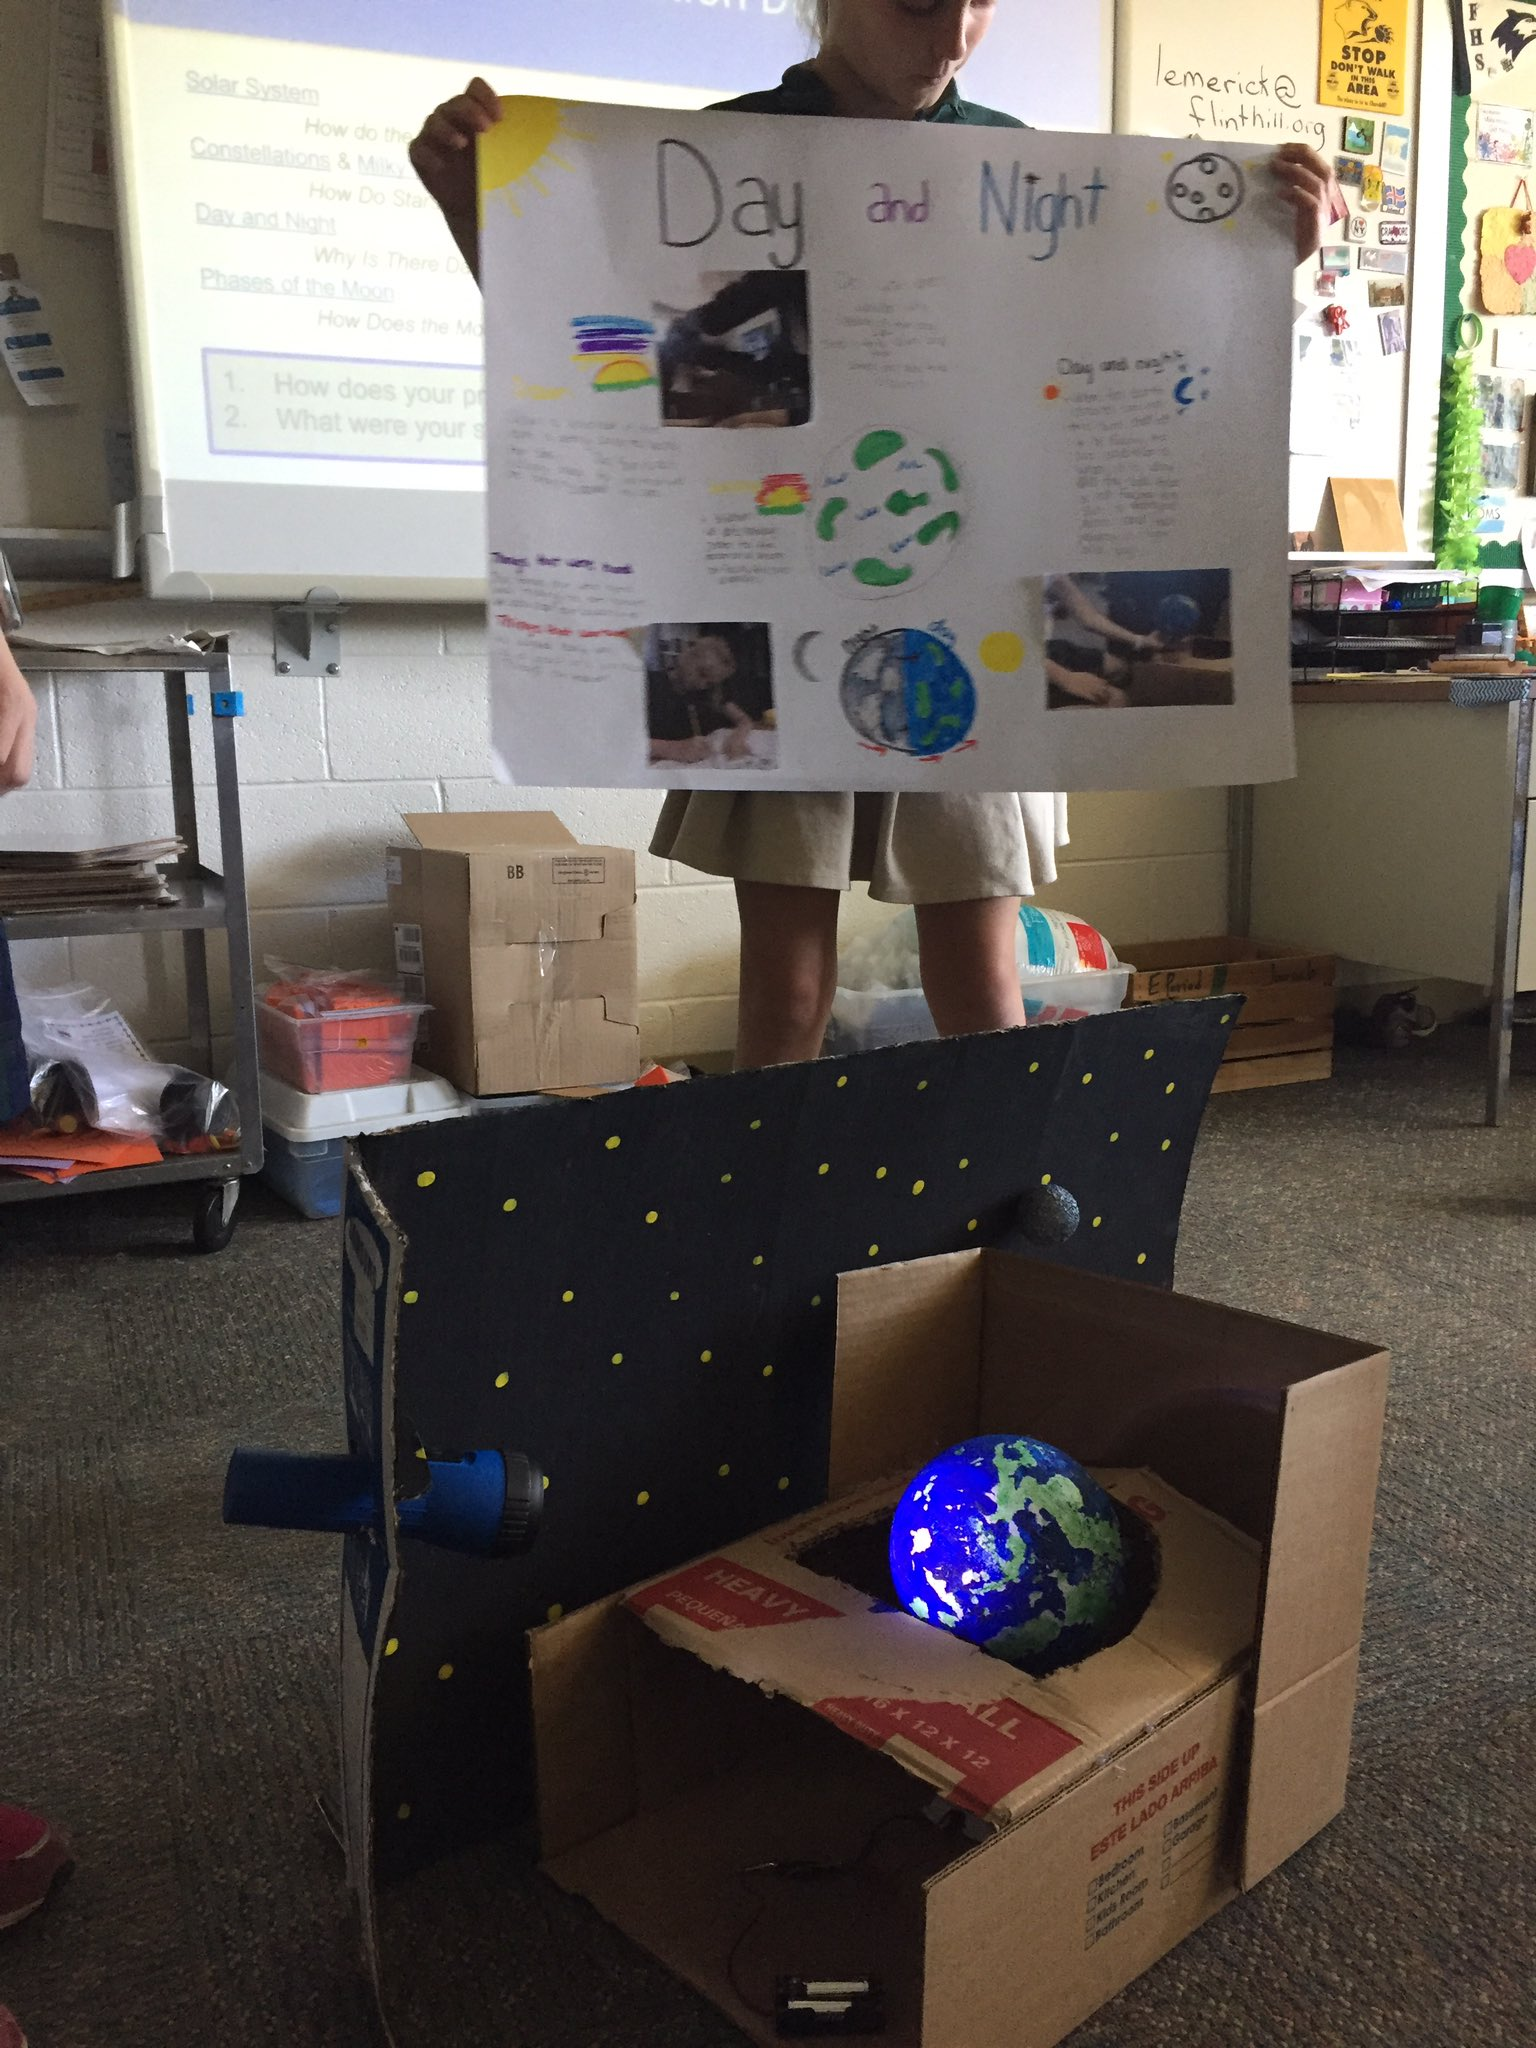 5th graders research and present how their models answer essential questions! #collaboration #myflinthill #innovation #projectbasedlearning https://t.co/pA78TM97vv